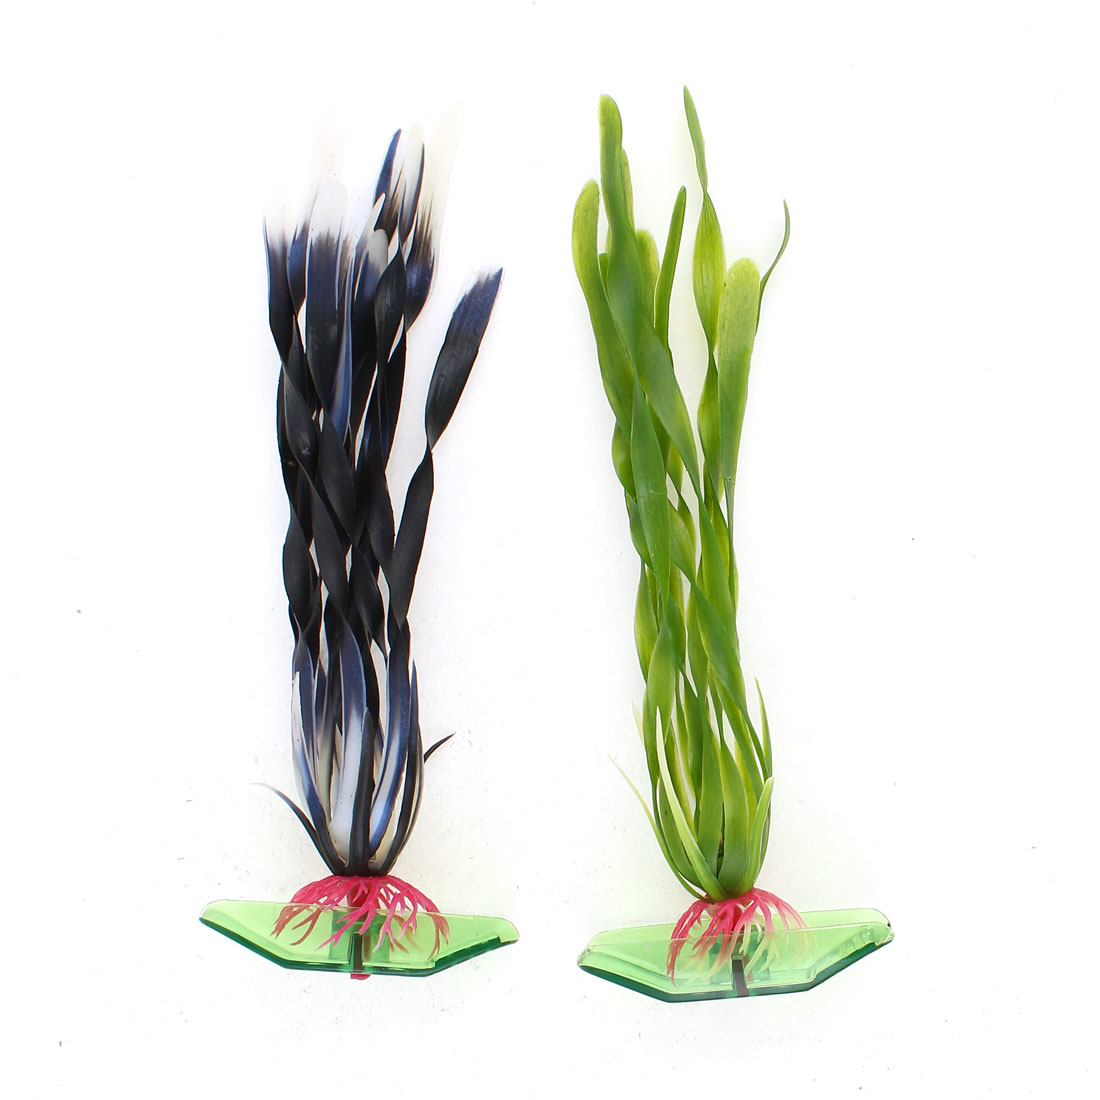 "2 PCS 6.9"" High Green Plastic Emulation Underwater Plants for Aquarium Ornament"